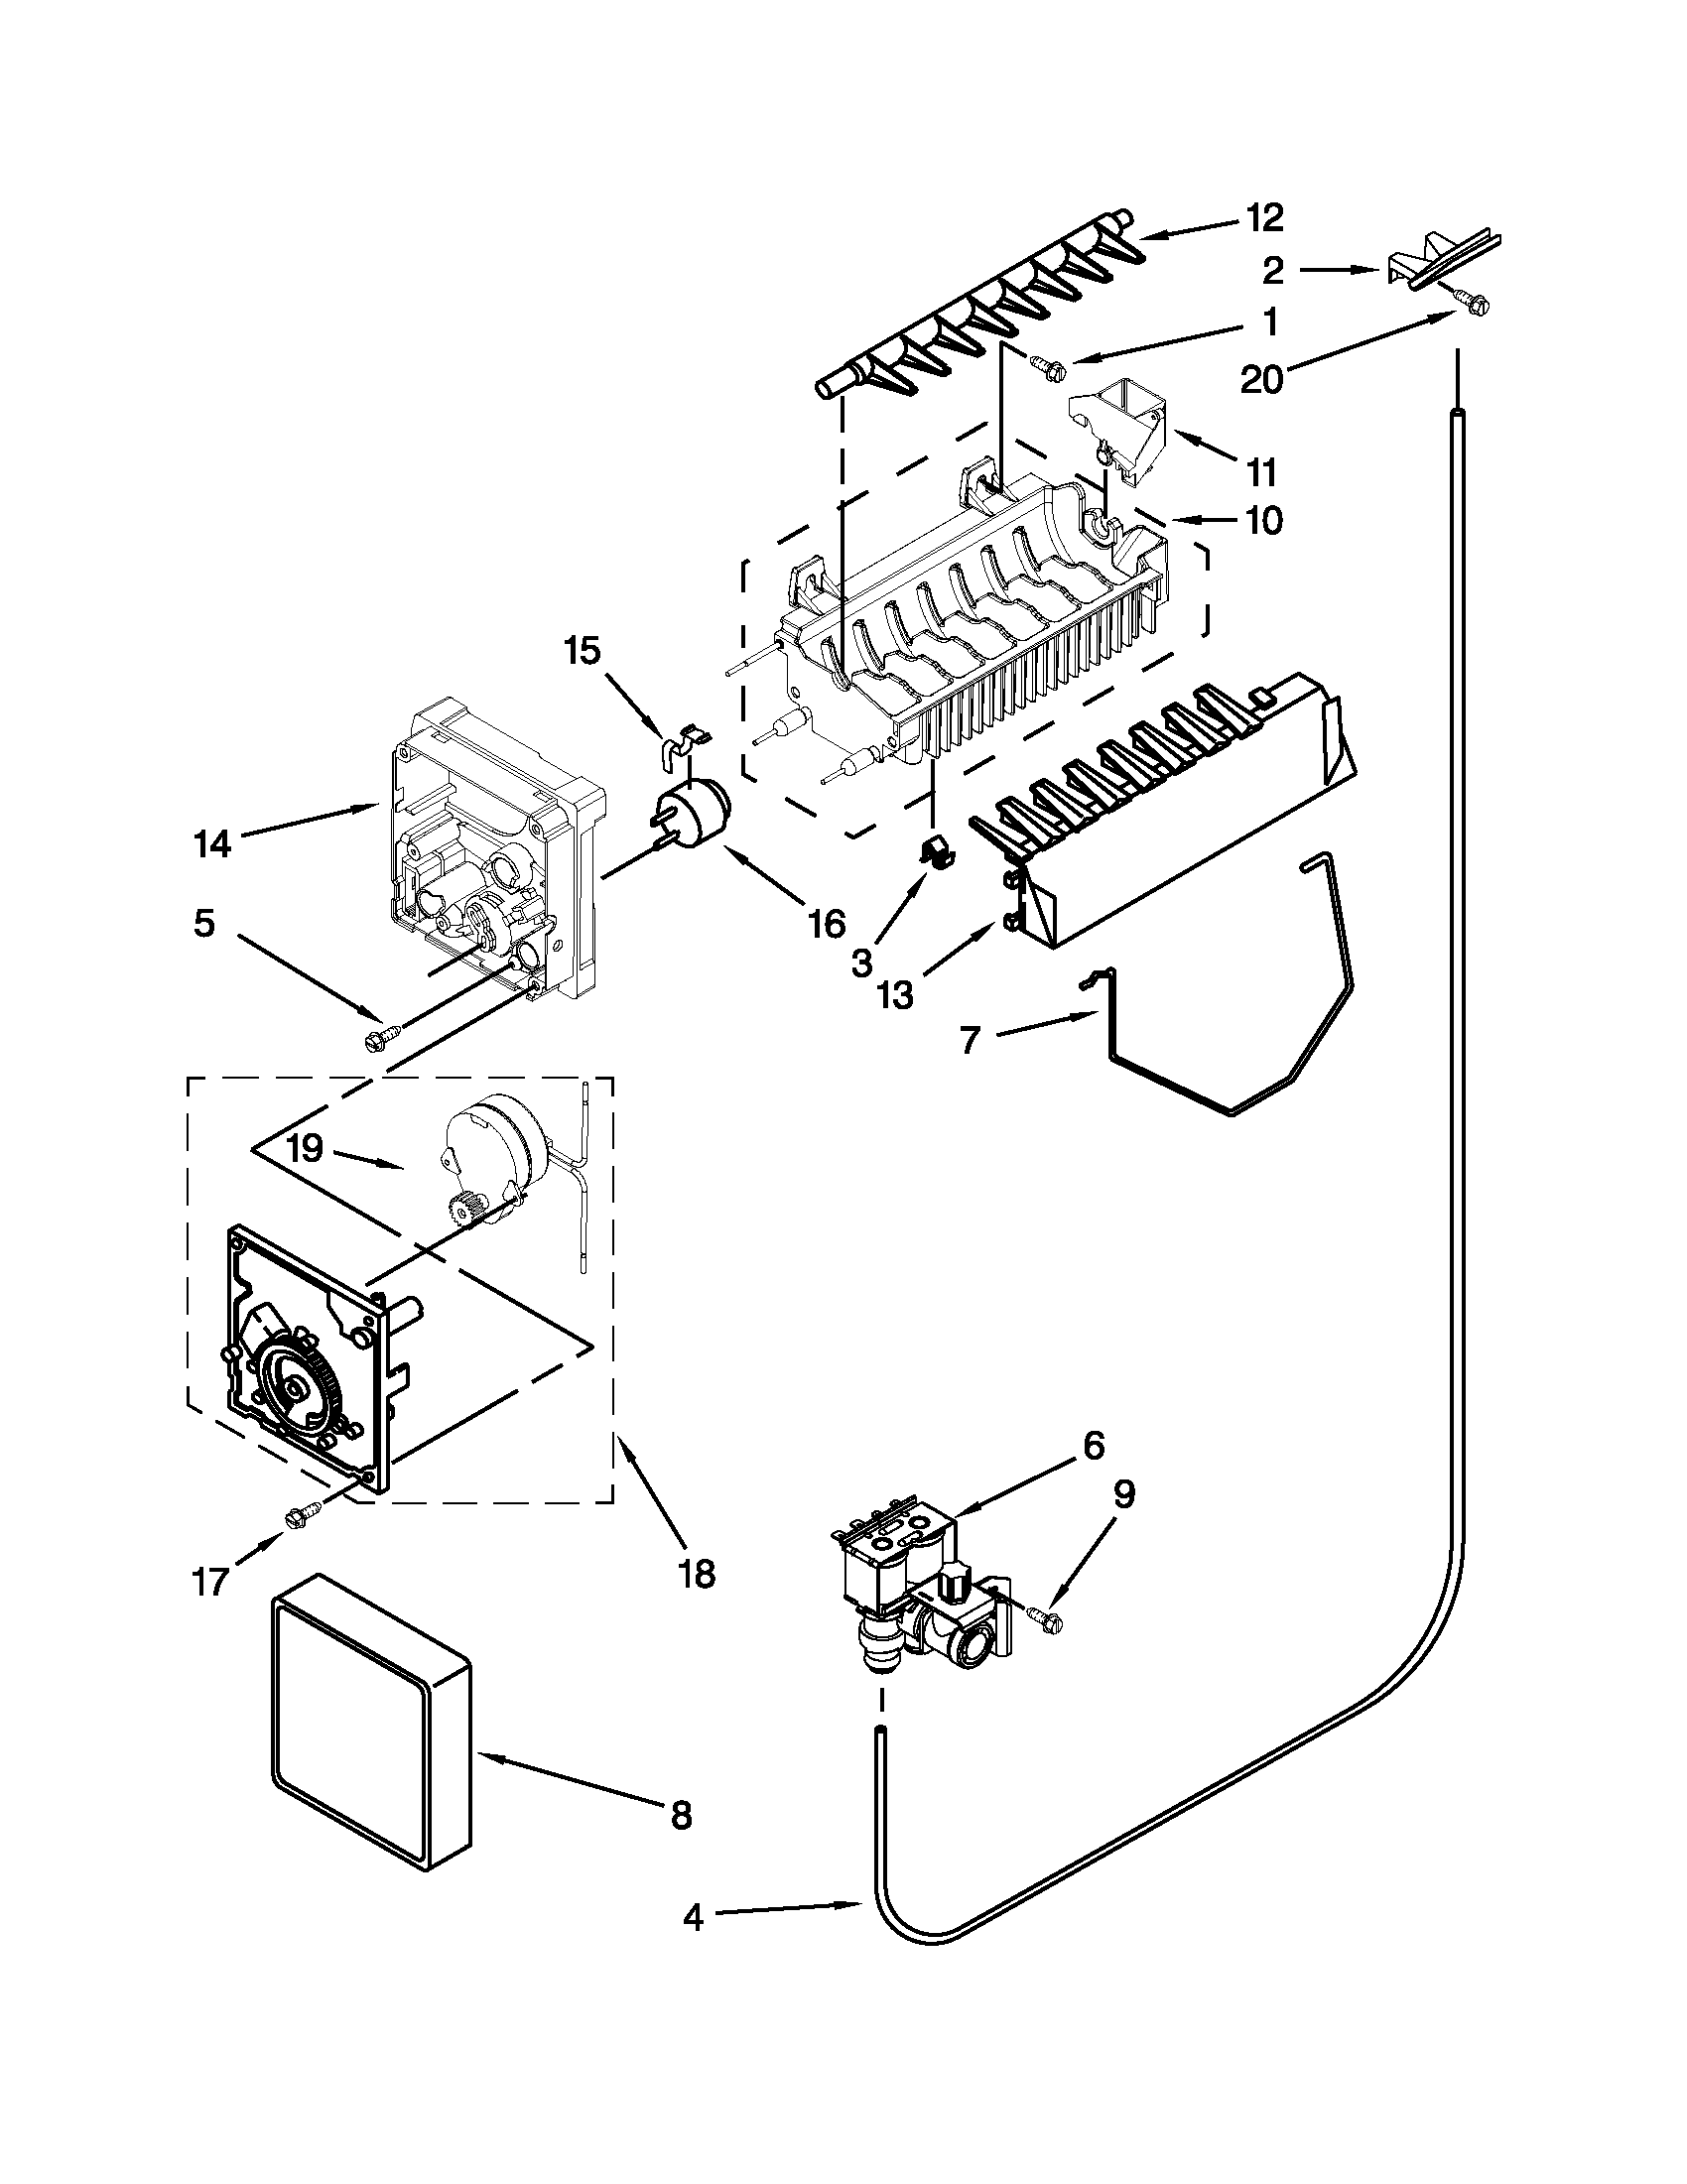 ice maker diagram honda qr 50 wiring icemaker parts and list for model asd2575brs01